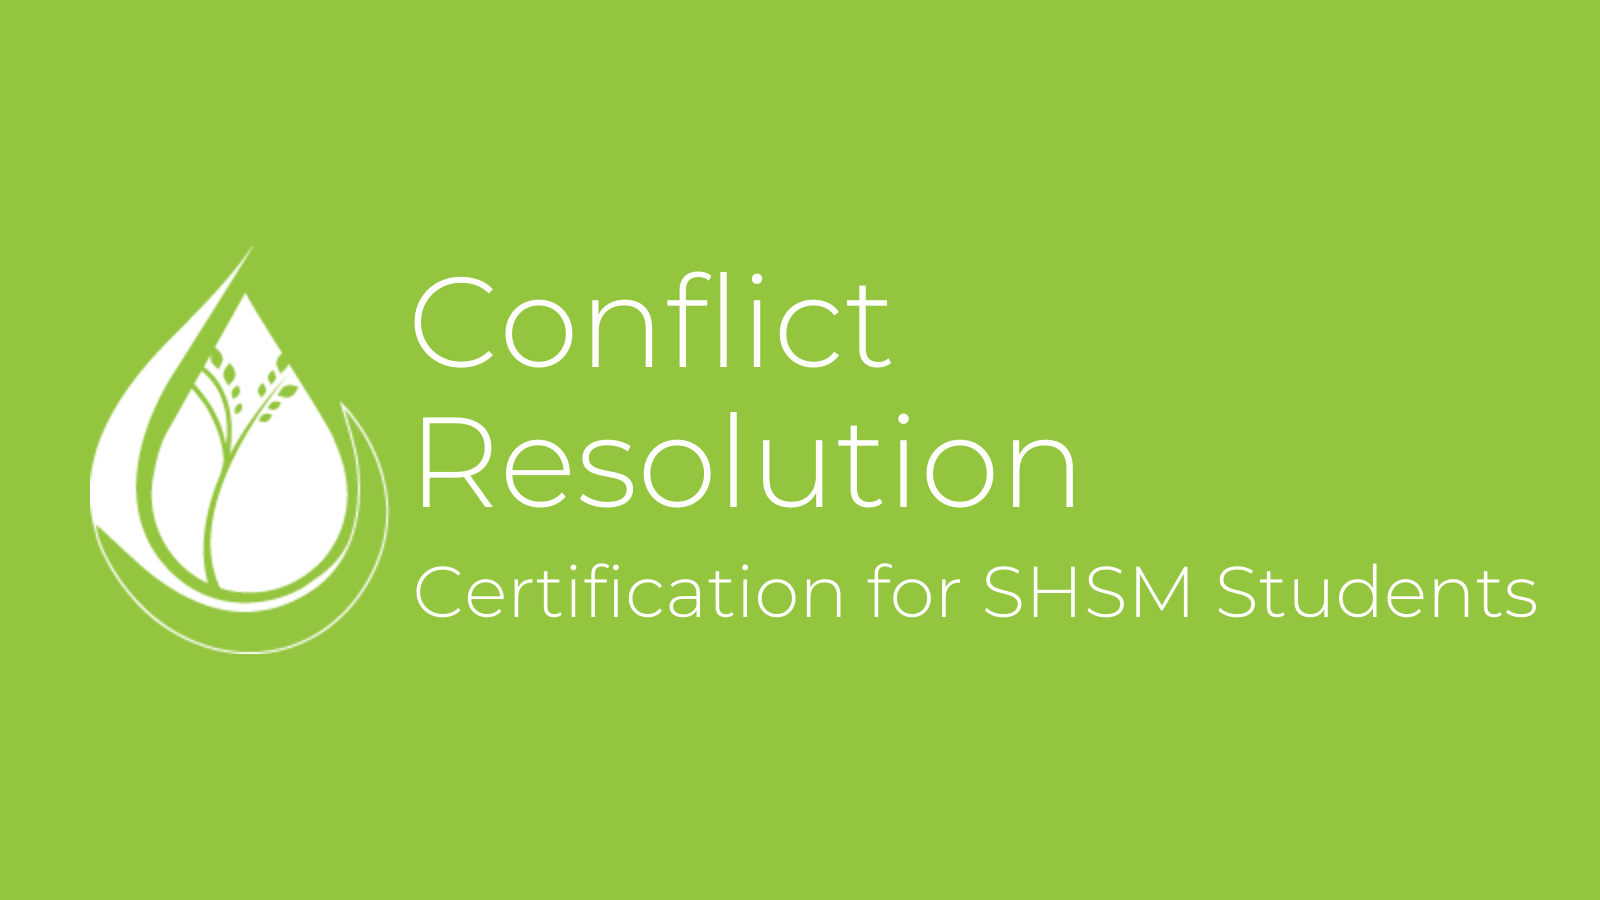 Conflict Resolution - Certification for SHSM Students